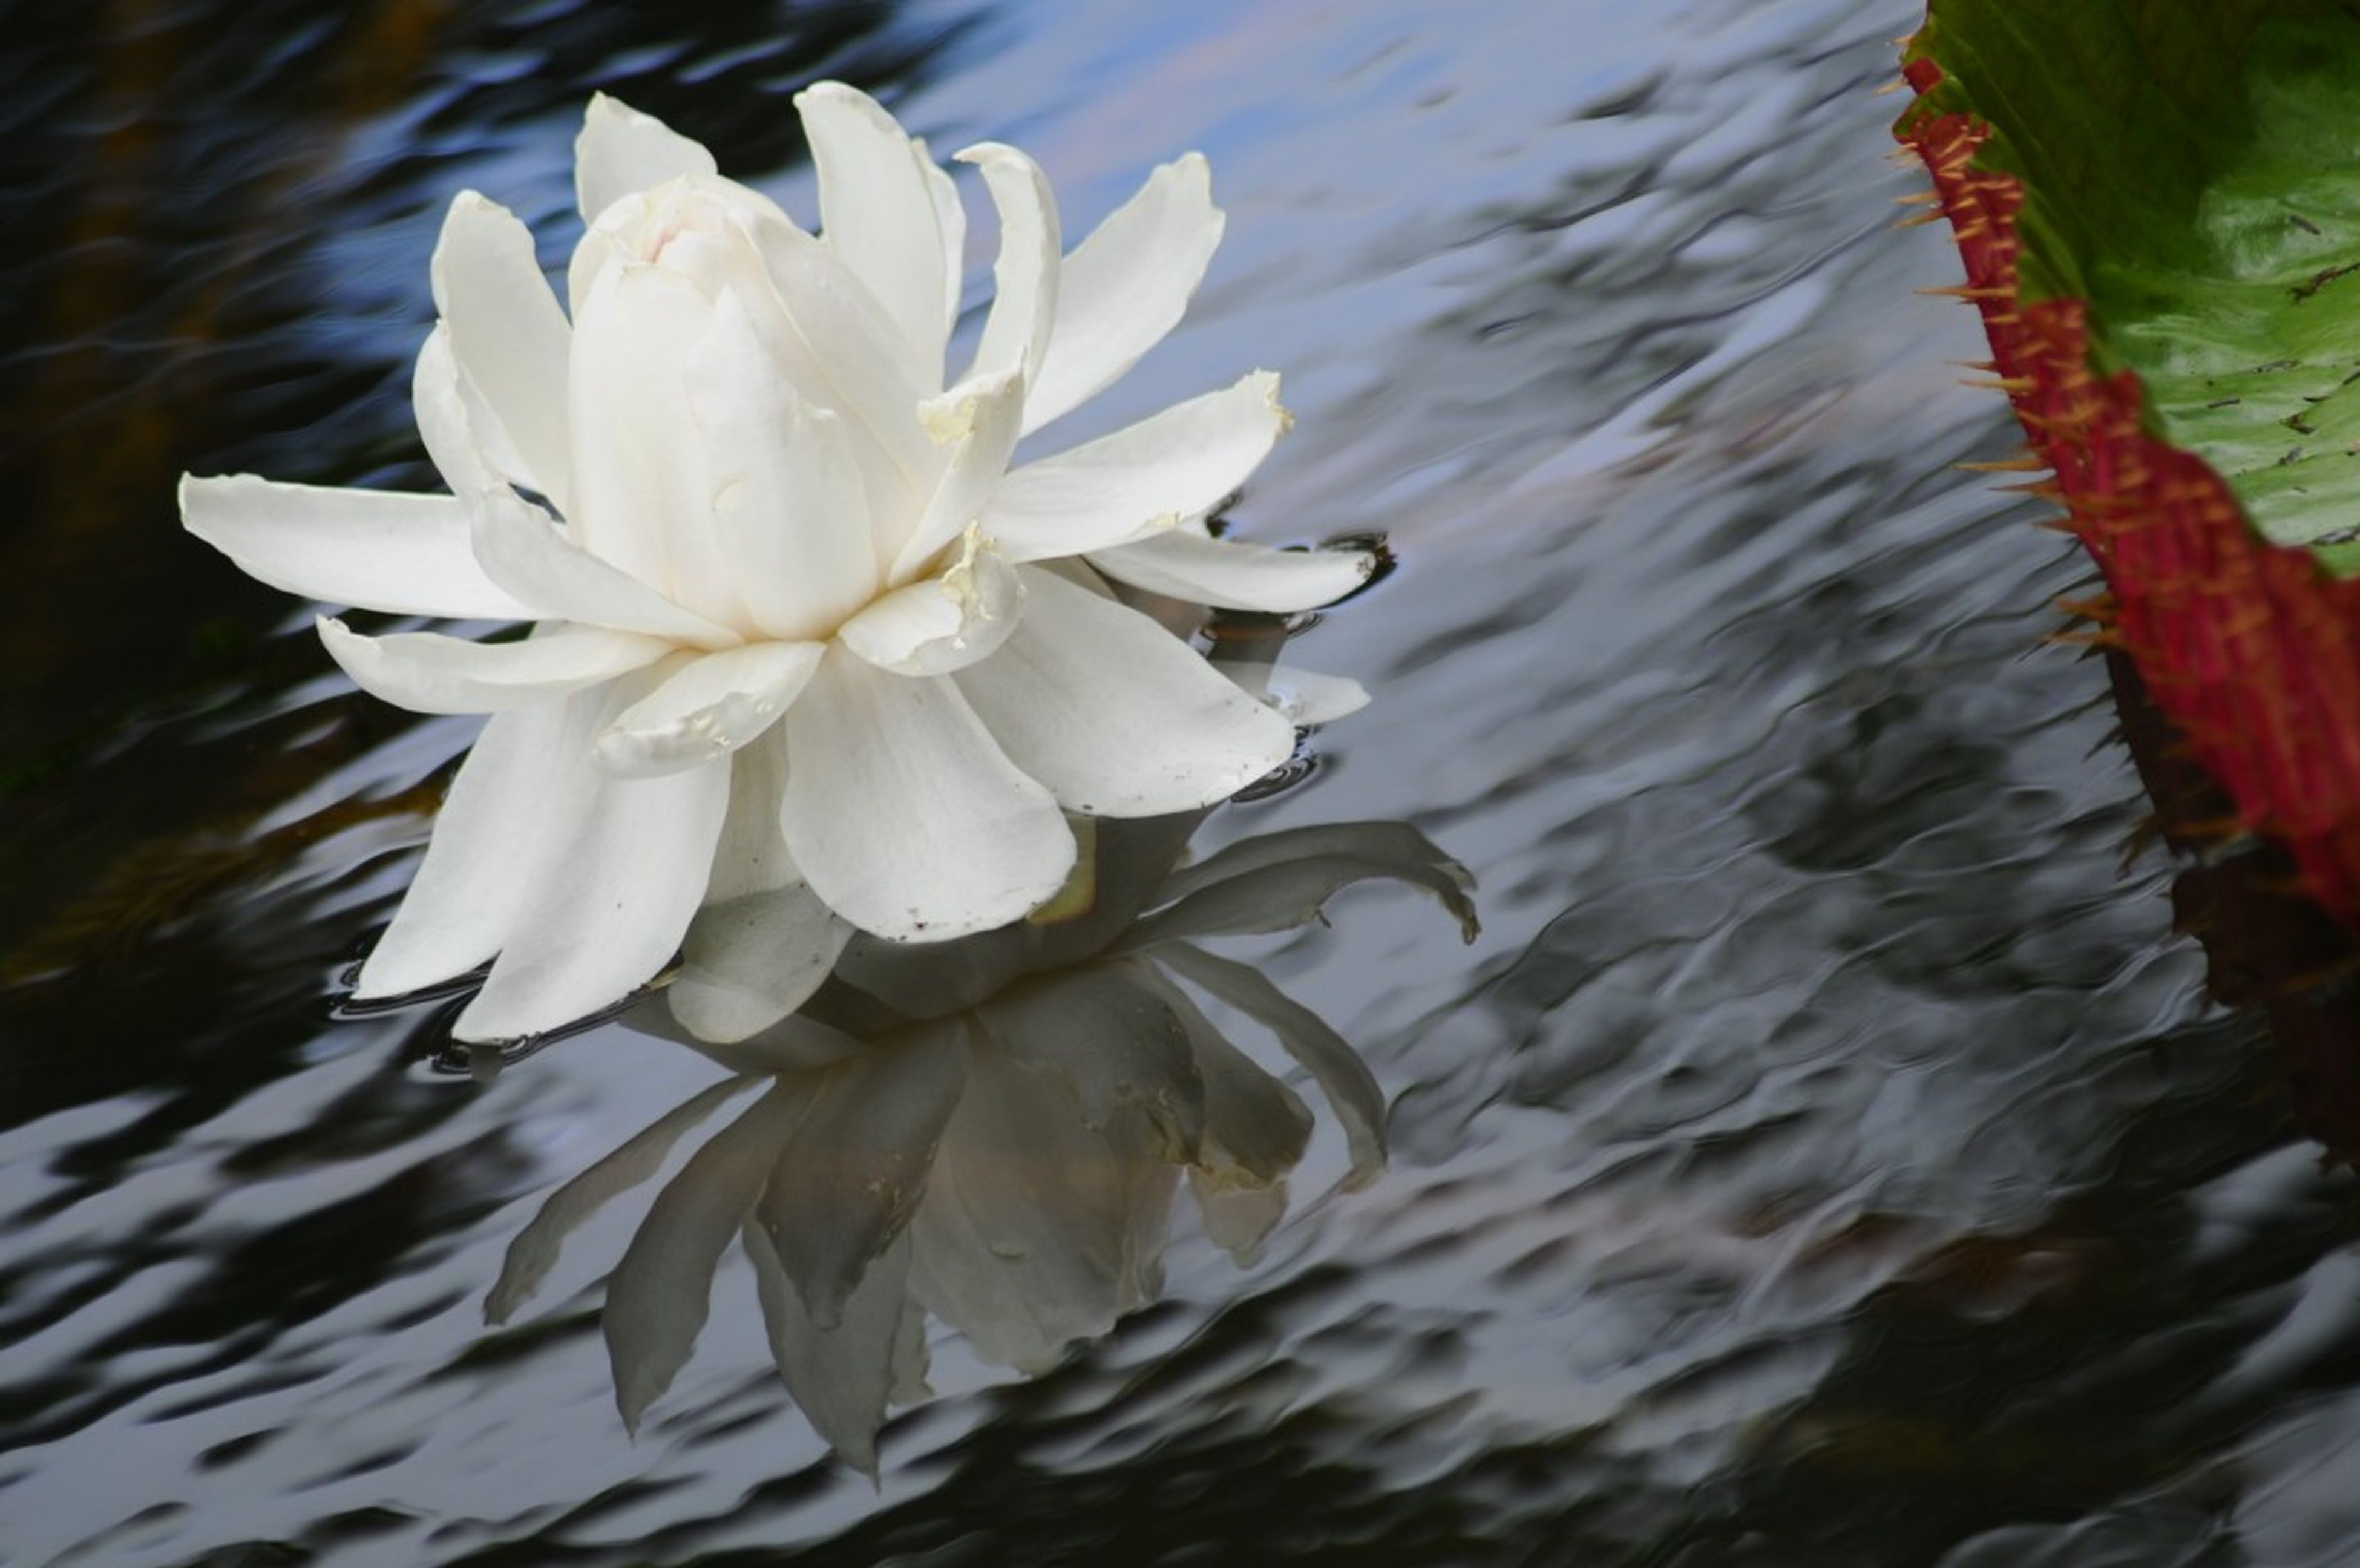 flower, petal, water, white color, freshness, floating on water, pond, flower head, fragility, beauty in nature, lake, high angle view, nature, water lily, reflection, close-up, single flower, waterfront, outdoors, blooming